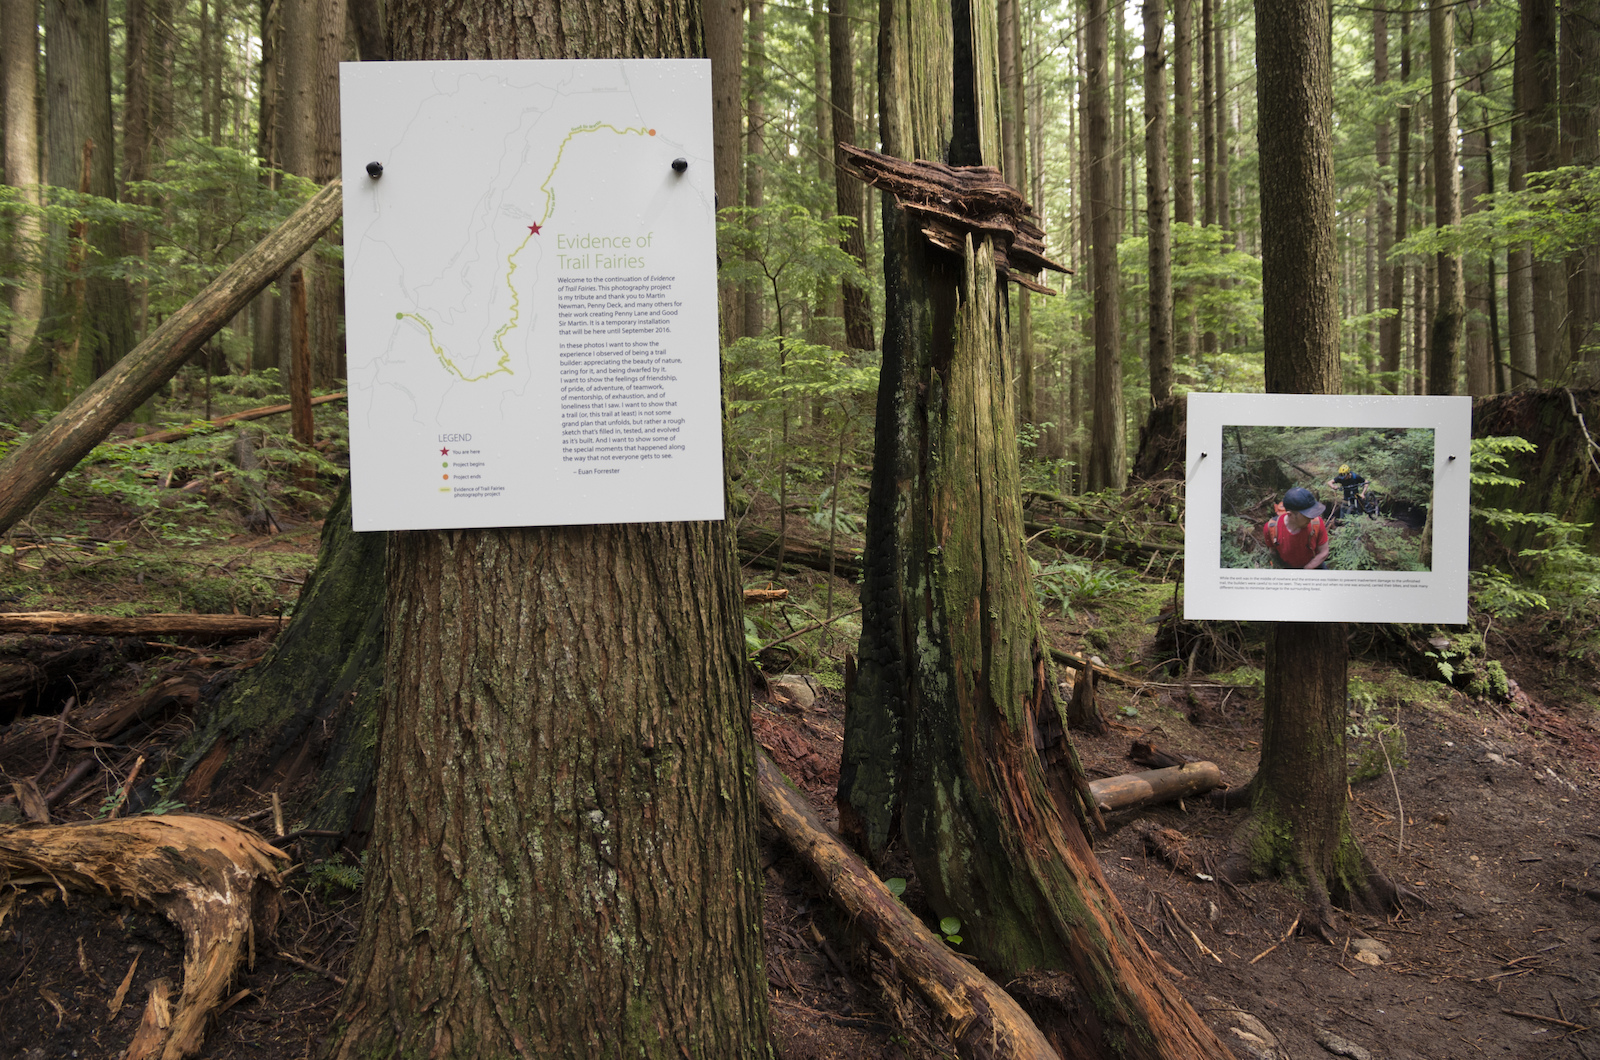 At the various trail intersections we placed maps and descriptions of the project.